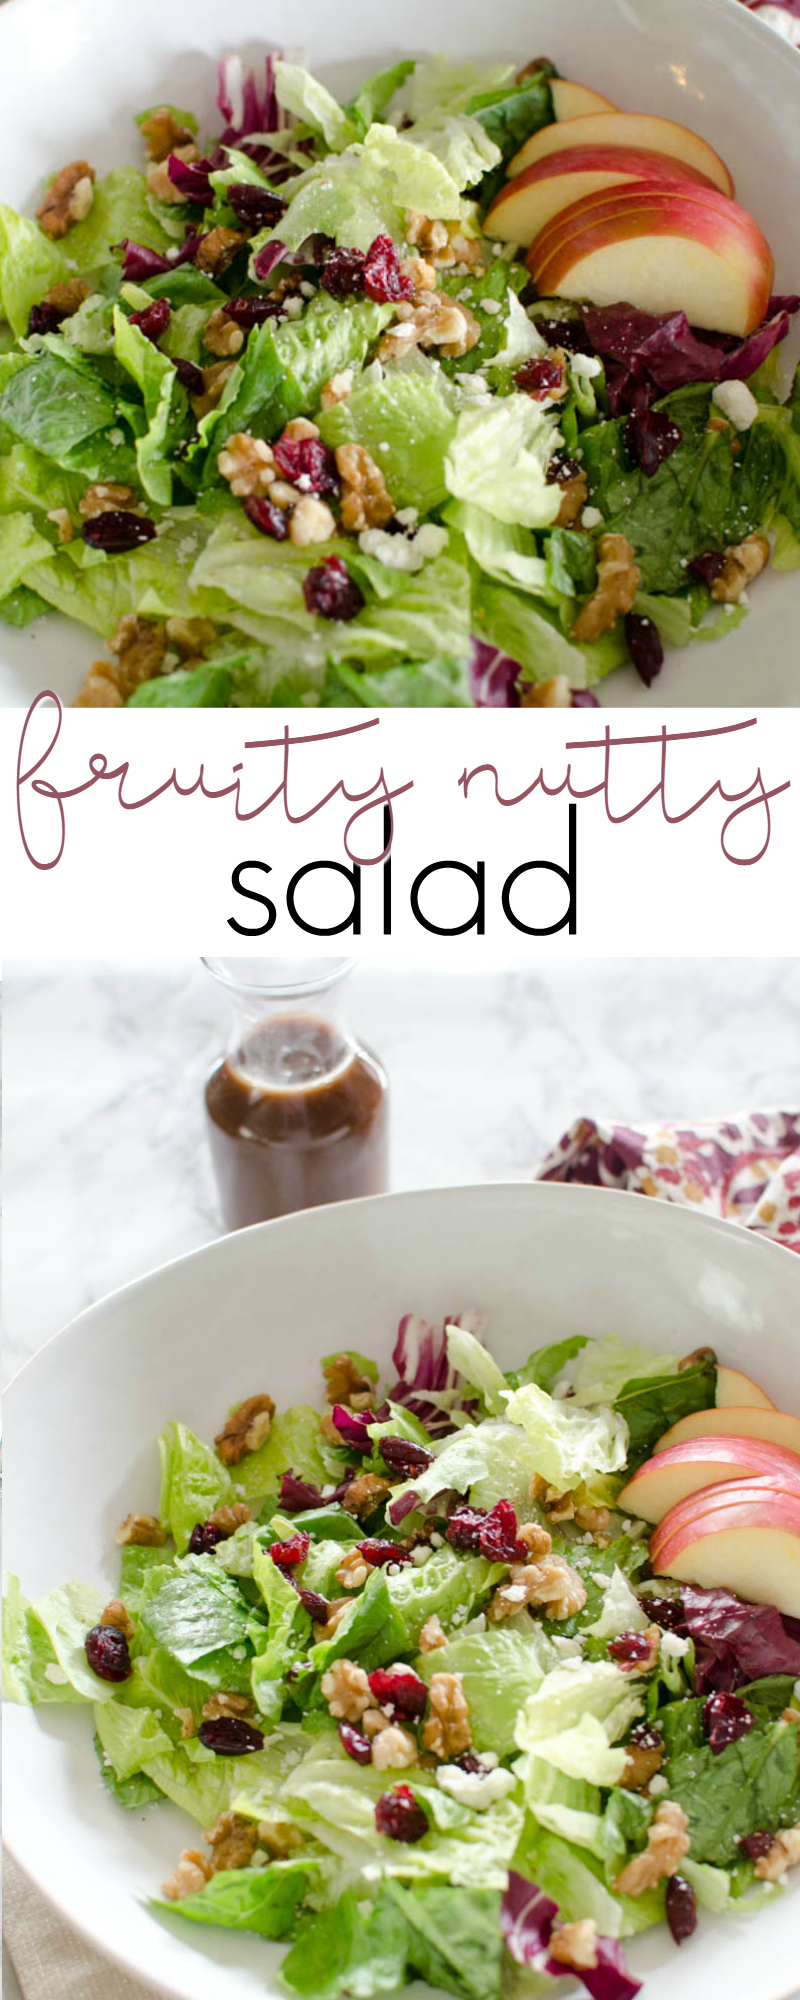 fruity-nutty-salad